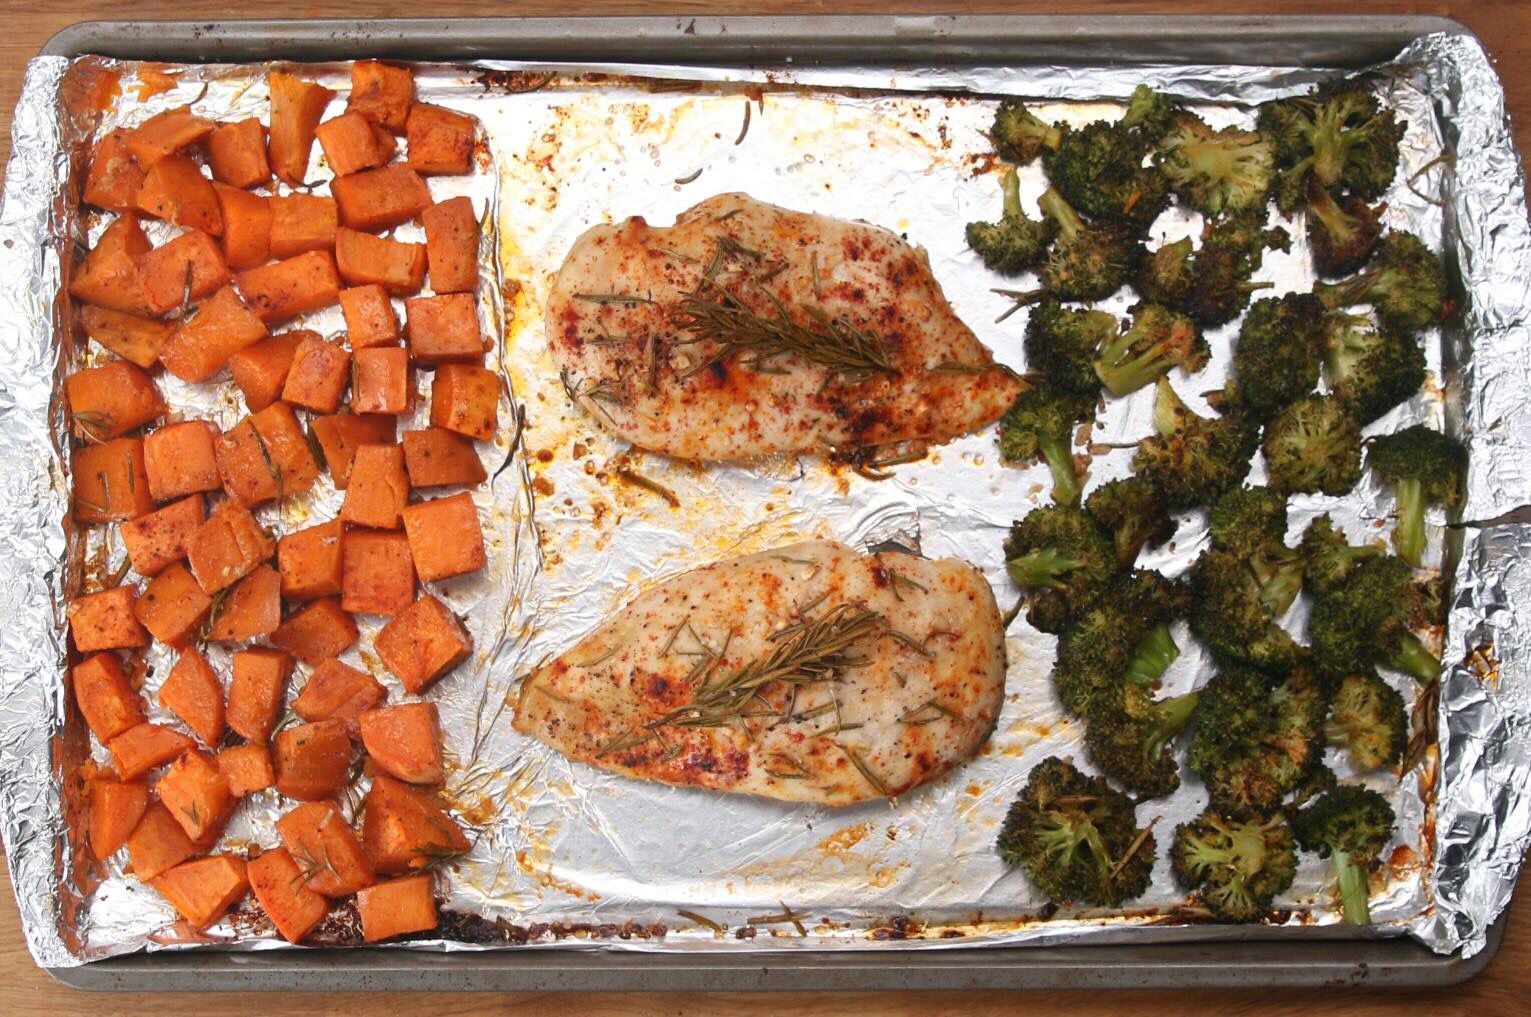 Servings: 2  What You'll Need:  Chicken Breasts - 2 boneless, skinless Sweet Potato - 1 large, diced Broccoli - 1 head or large bag of broccoli florets Garlic - 4 cloves, minced Rosemary - 2 Tbsp. Paprika - 1 Tbsp. Salt and Pepper - to taste Olive Oil - 2 Tbsp.  Directions:  Line a baking sheet with aluminum foil. Lay out the sweet potato, chicken breasts, and broccoli. Evenly distribute the garlic, rosemary, paprika, salt, and pepper over the entire pan. Drizzle with olive oil. Bake at…